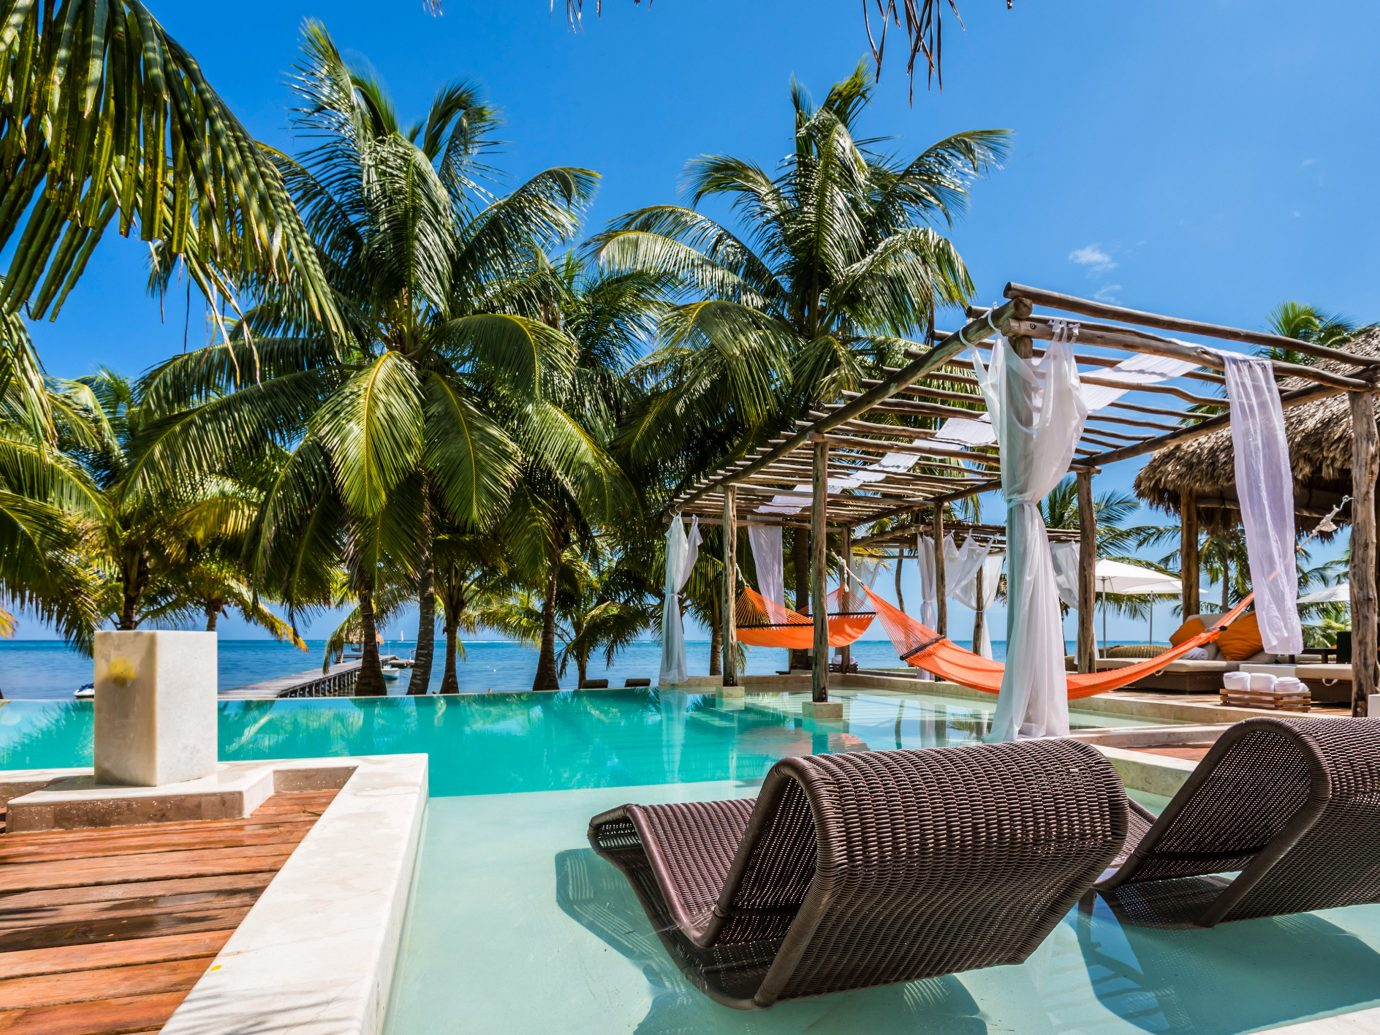 Trip Ideas tree sky outdoor leisure Resort property chair vacation swimming pool Beach caribbean Pool estate arecales palm Villa condominium lined area furniture shade